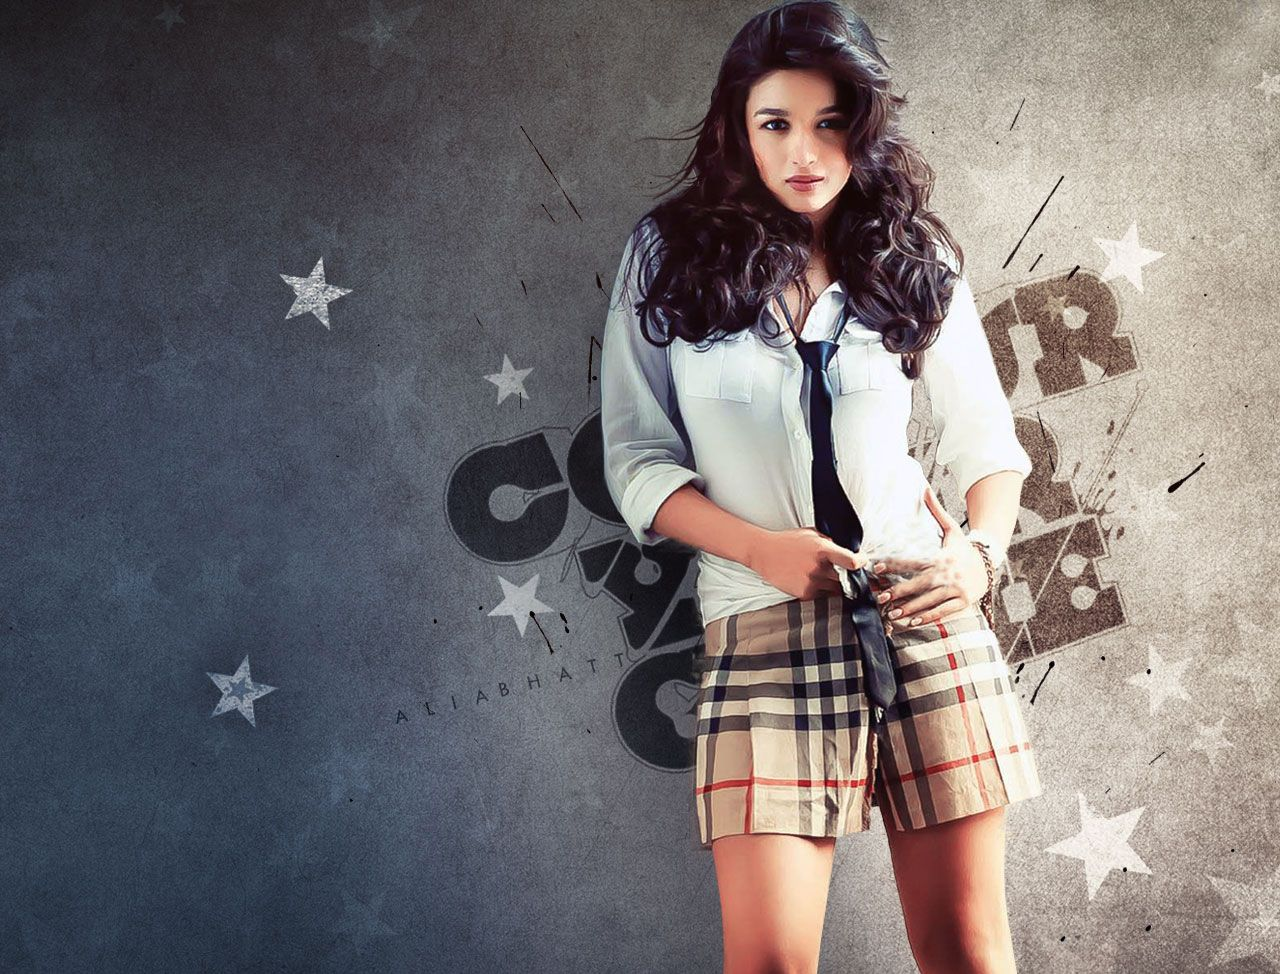 Alia bhatt hot and spicy images wallpapers - Alia Bhatt Hot Wallpapers